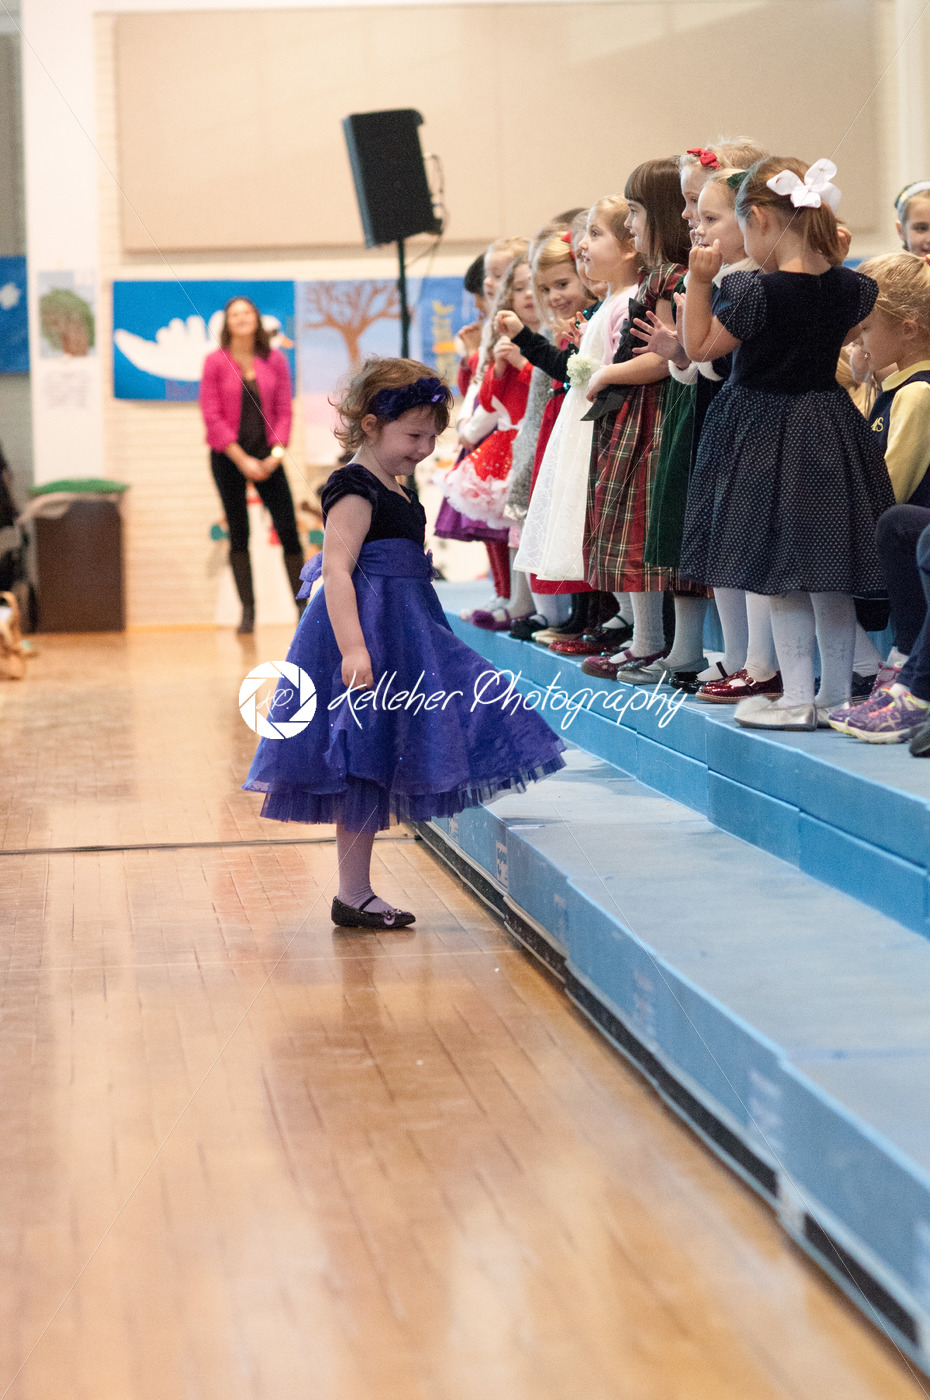 ROSEMONT, PA – DECEMBER 19: Agnes Irwin Winter Concert on December 19, 2013 - Kelleher Photography Store